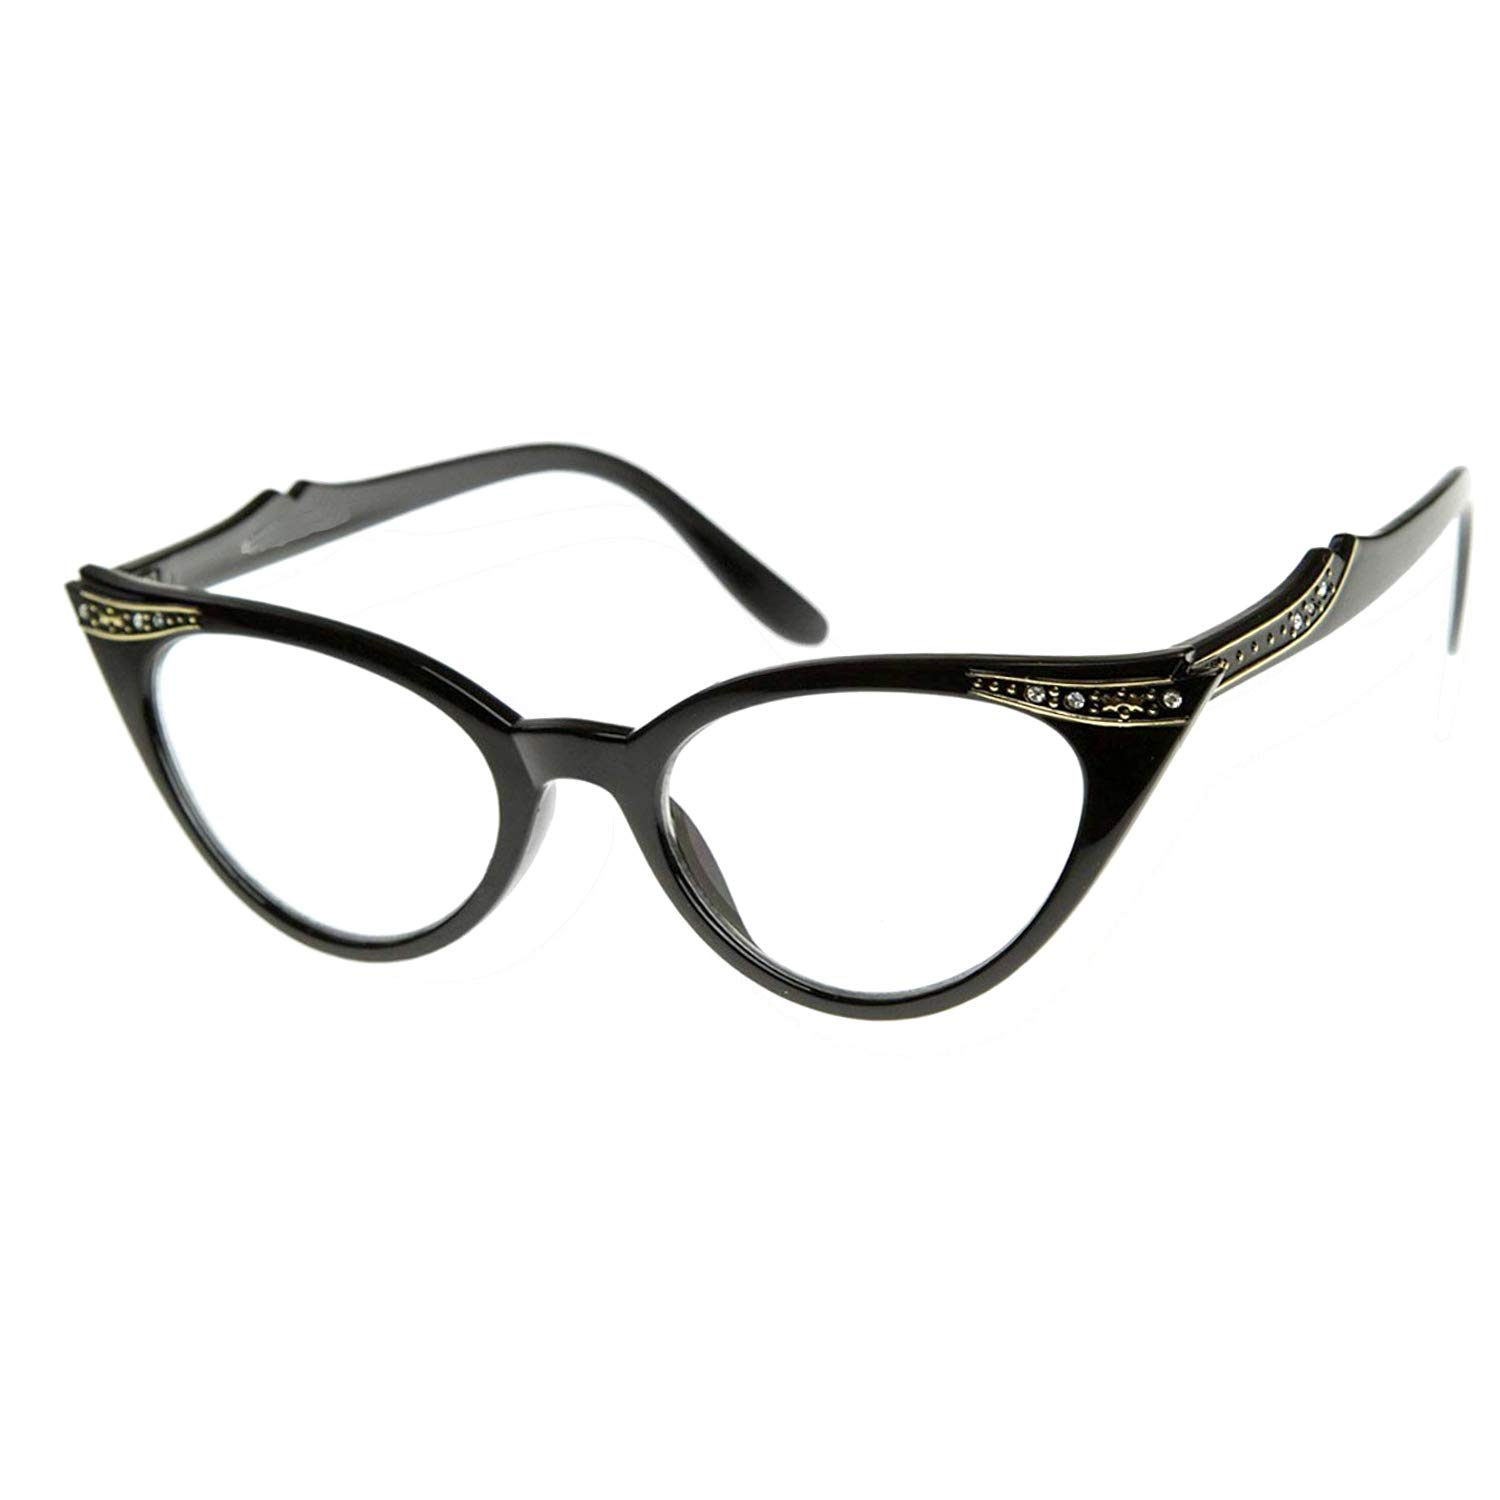 5dc8fa9de859 Amazon.com  Vintage Cateyes Fashion Clear Lens Cat Eye Glasses with  Rhinestones (Black Clear Lens)  Clothing